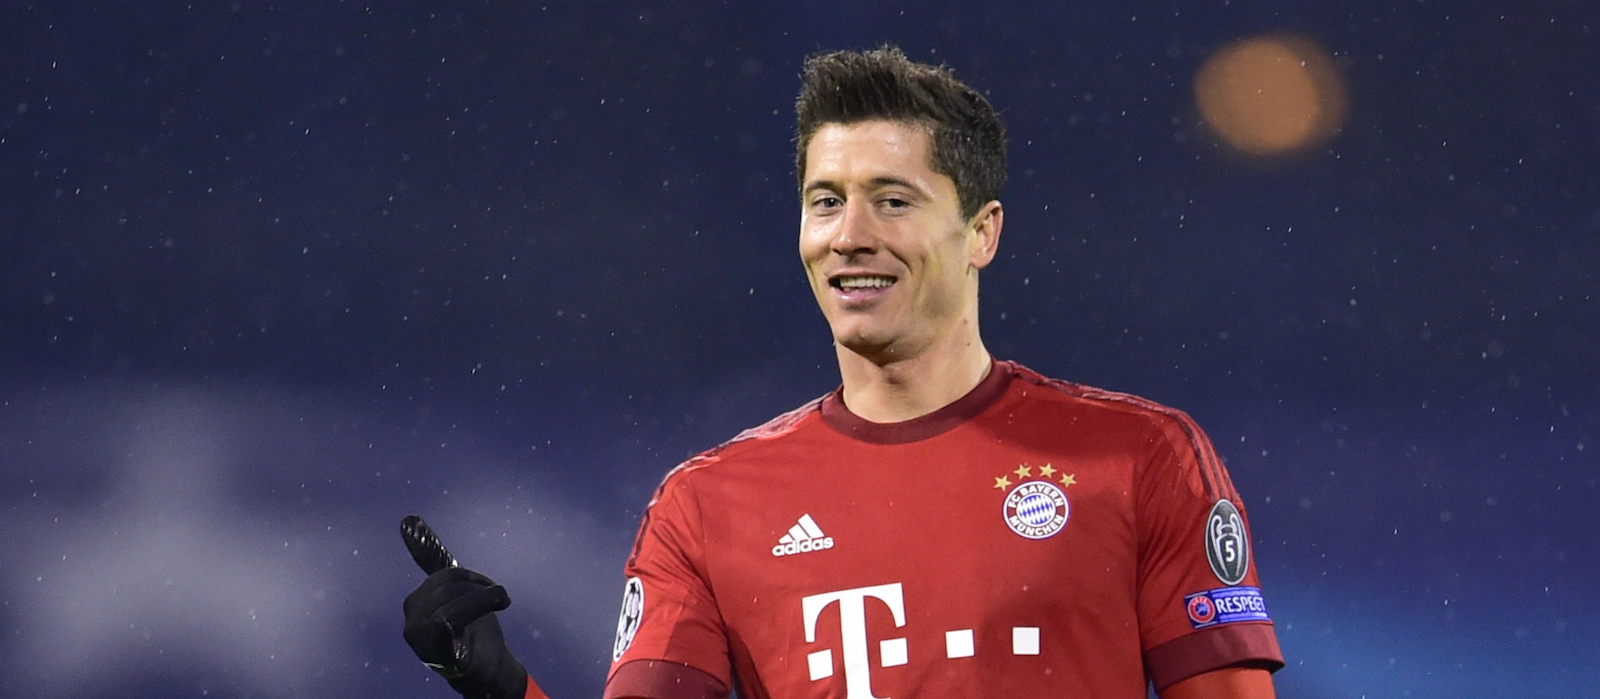 Carlo Ancelotti reacts to Robert Lewandowski's potential Man United transfer